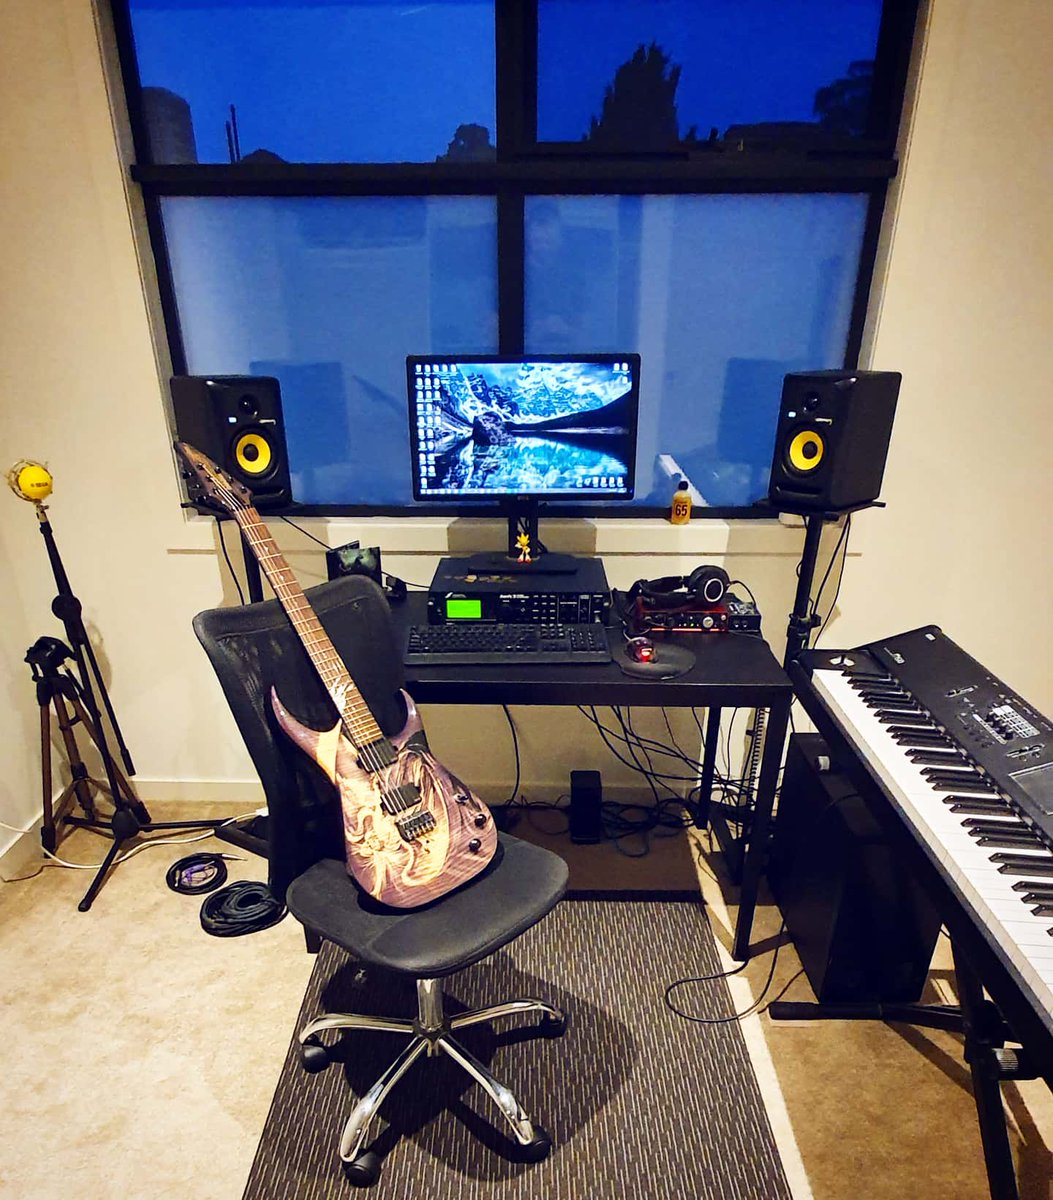 The new studio is looking sharp! Lots of exciting music to be made here in the coming months! ______________________________ #musicstudio #guitar #guitarist #axefx #focusrite #korg #audiotechnicapic.twitter.com/8pXX6JpC5Z